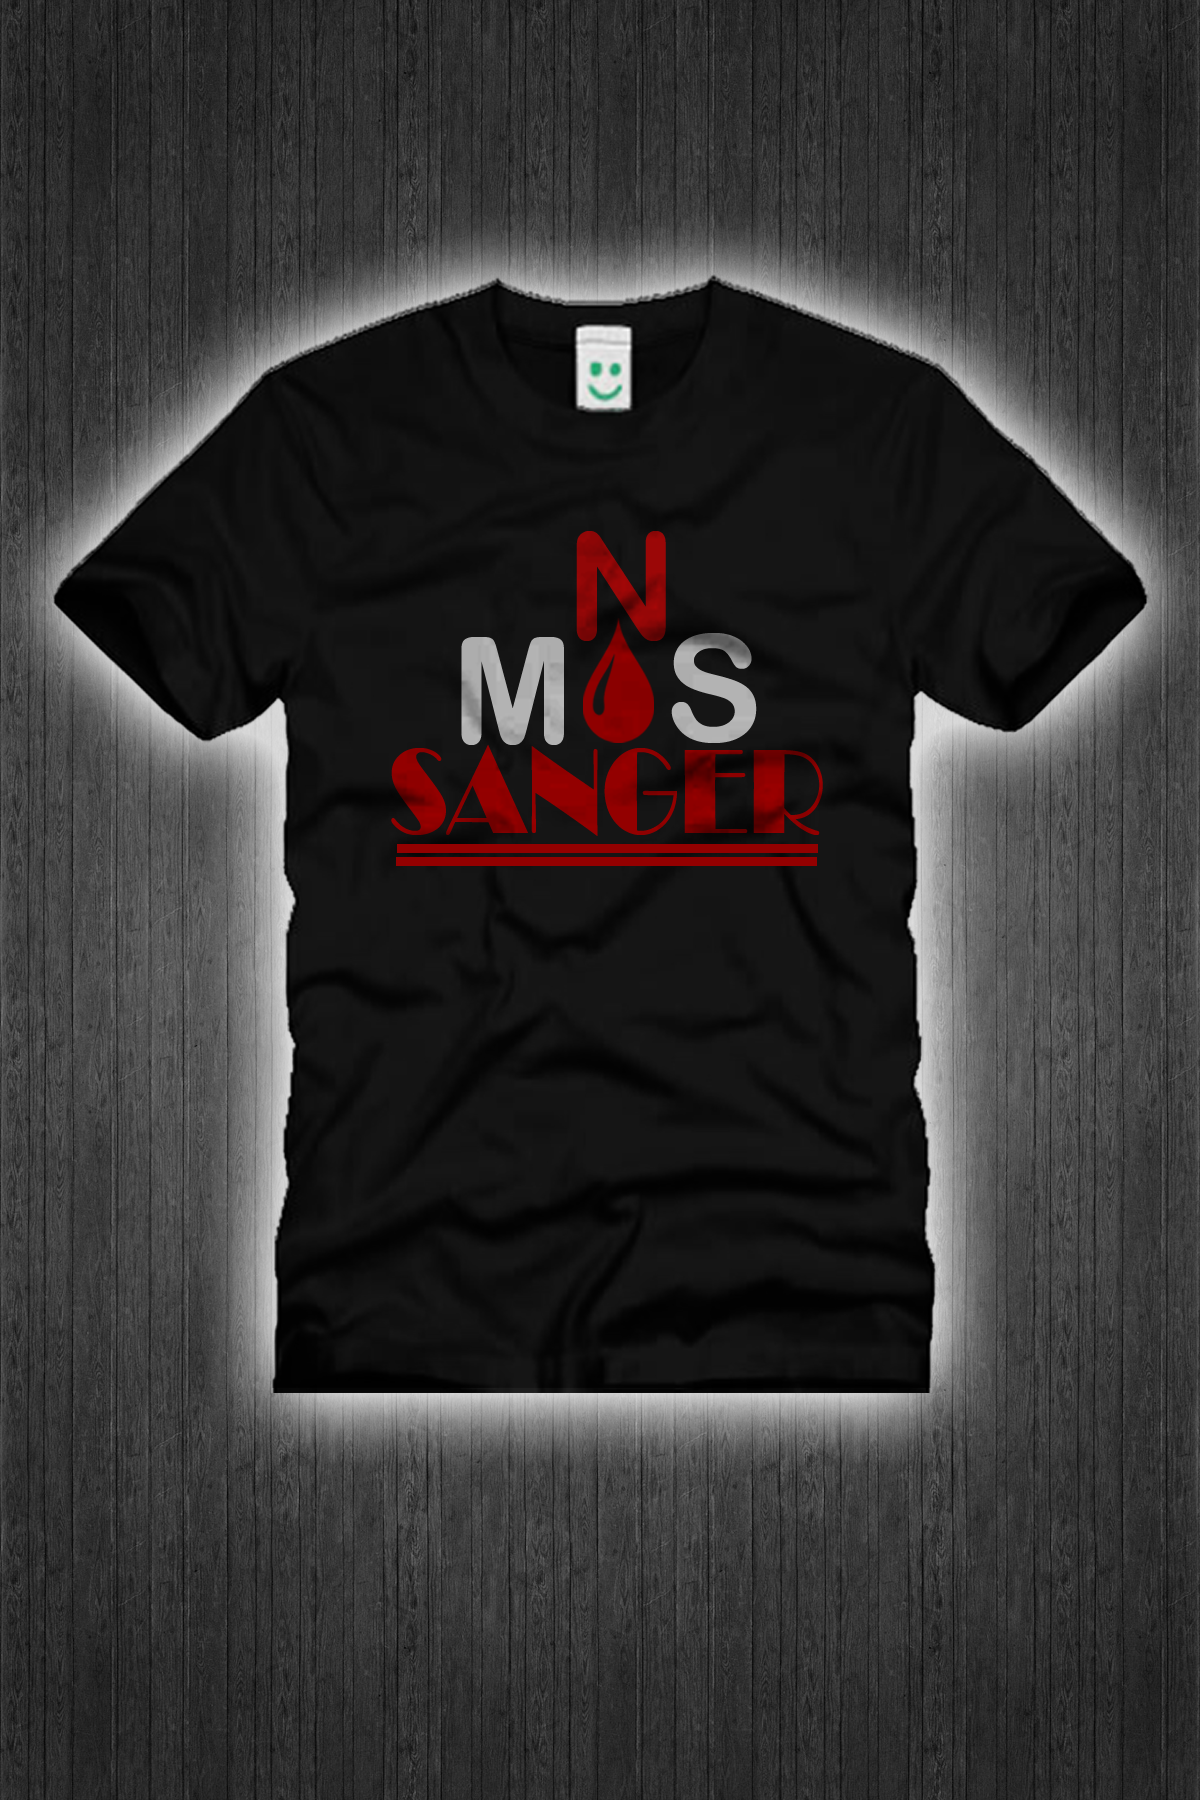 I will put your desain to tshirts